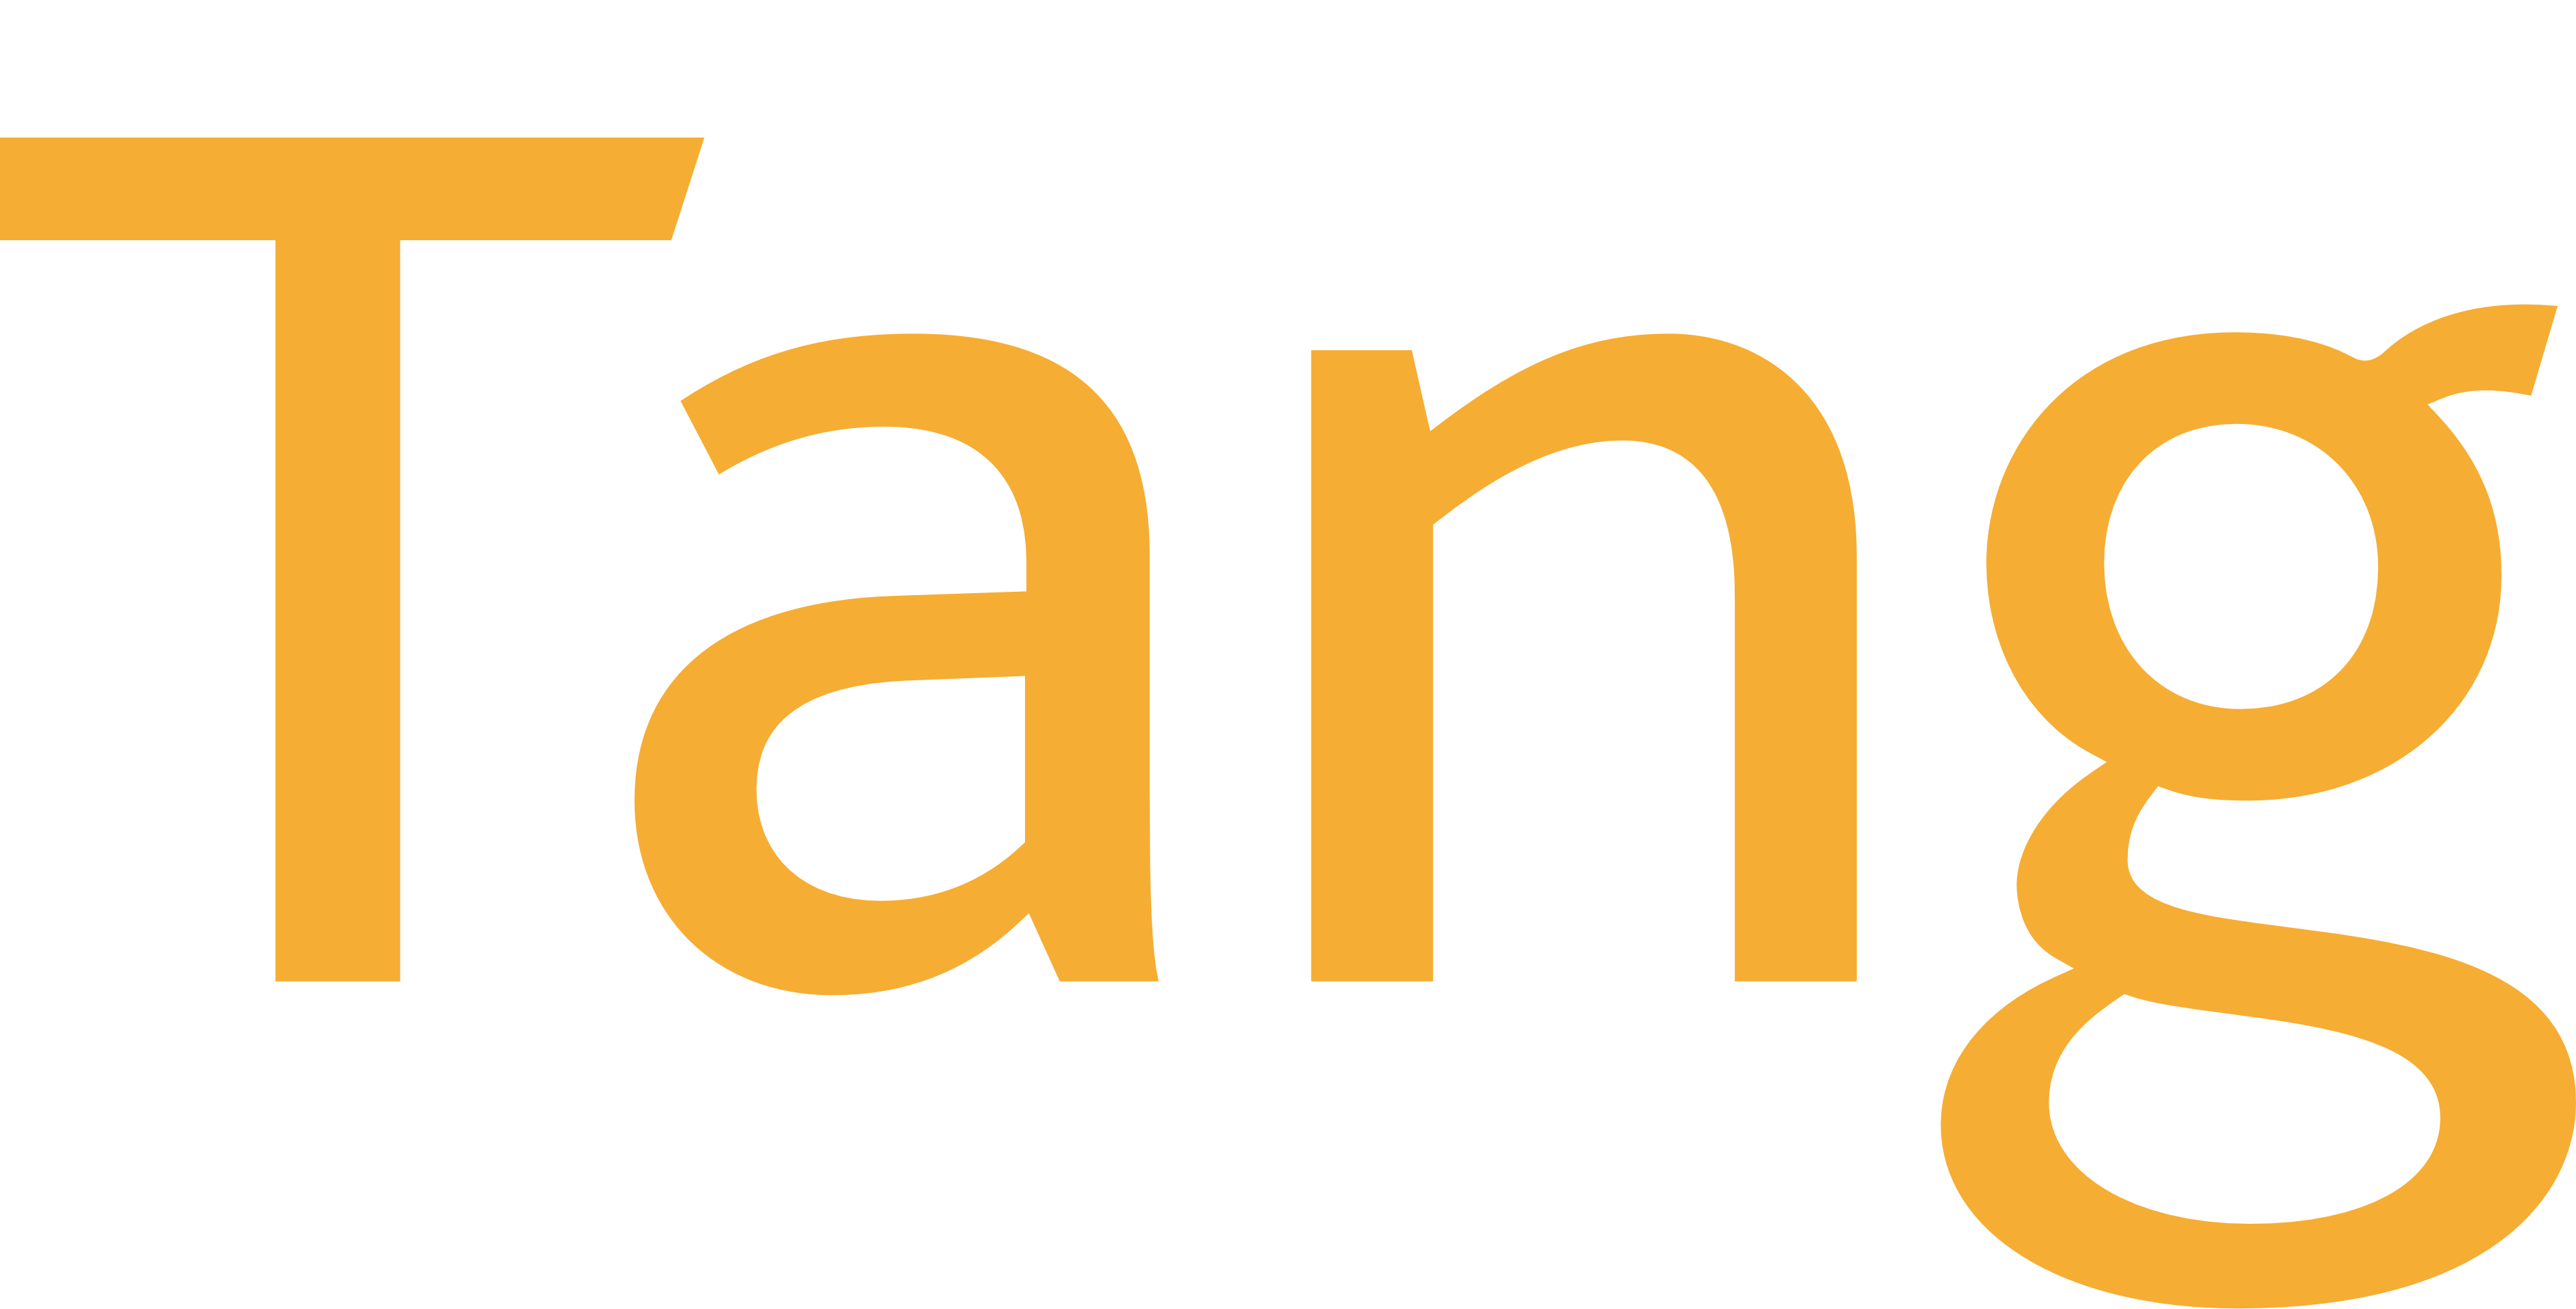 Tang - Creative Marketing in a Digital World